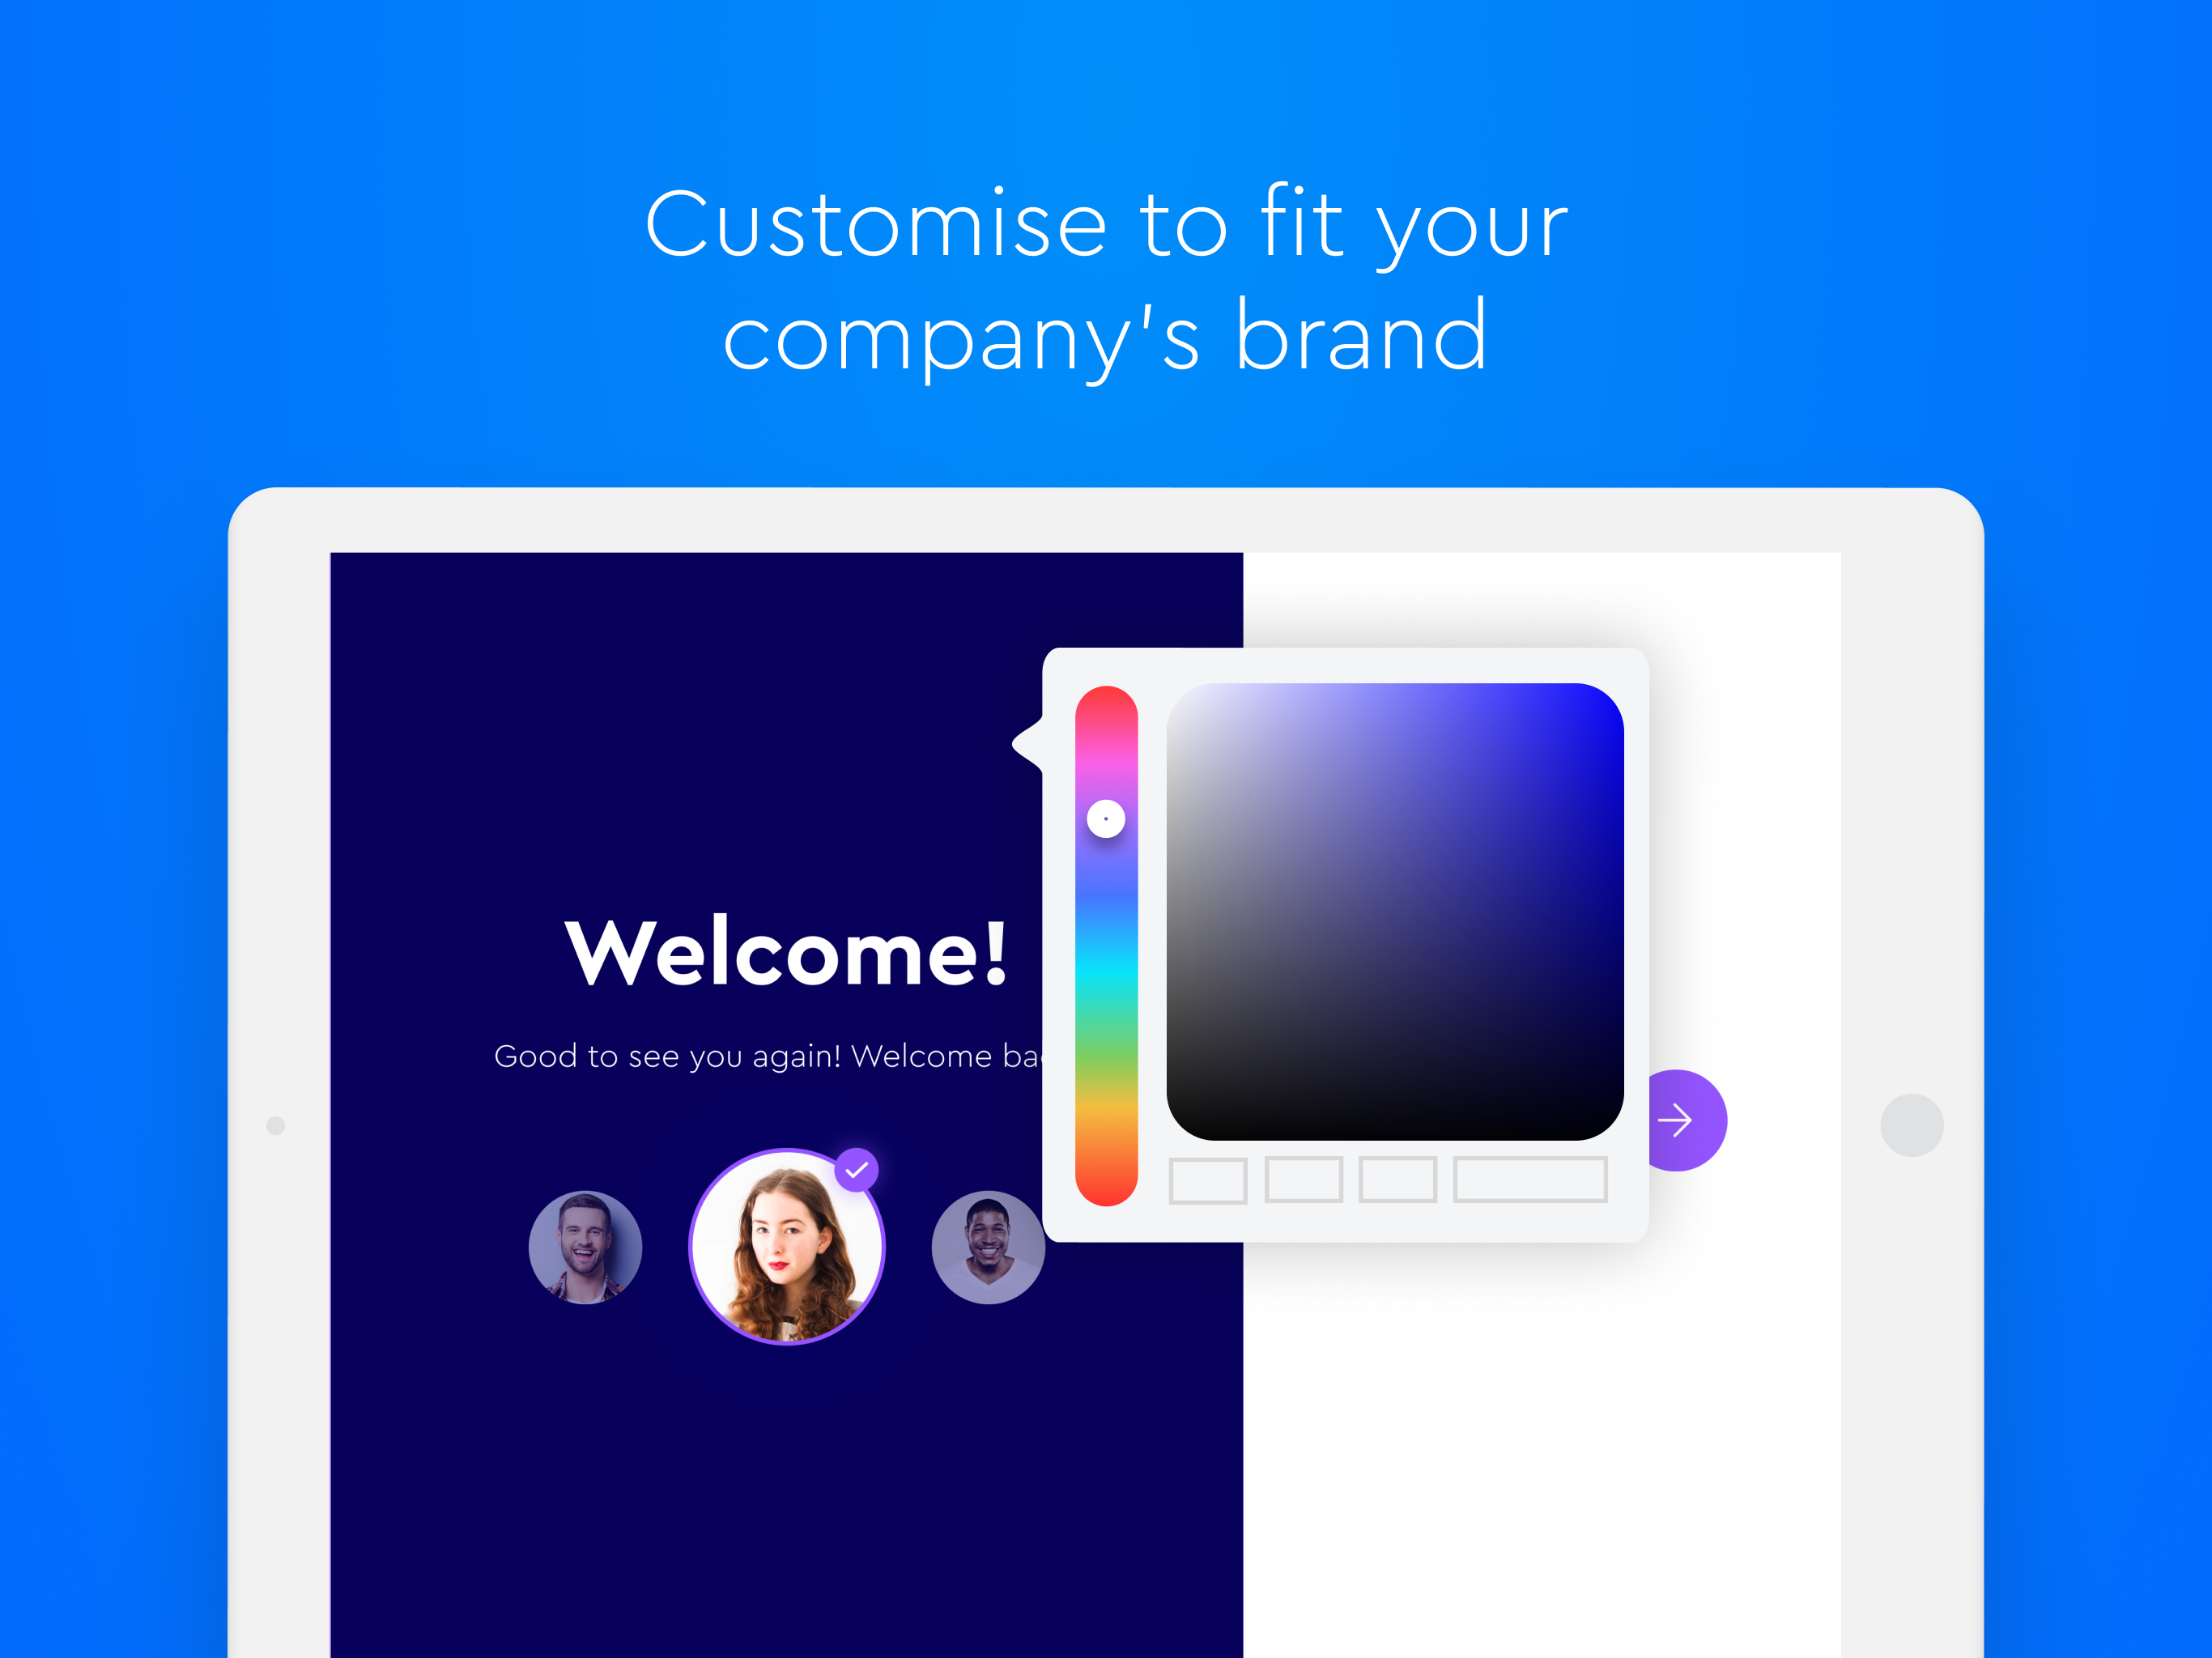 With a customisable appearance, you can highlight your company branding so visitors can experience who you are from the moment they walk in the door